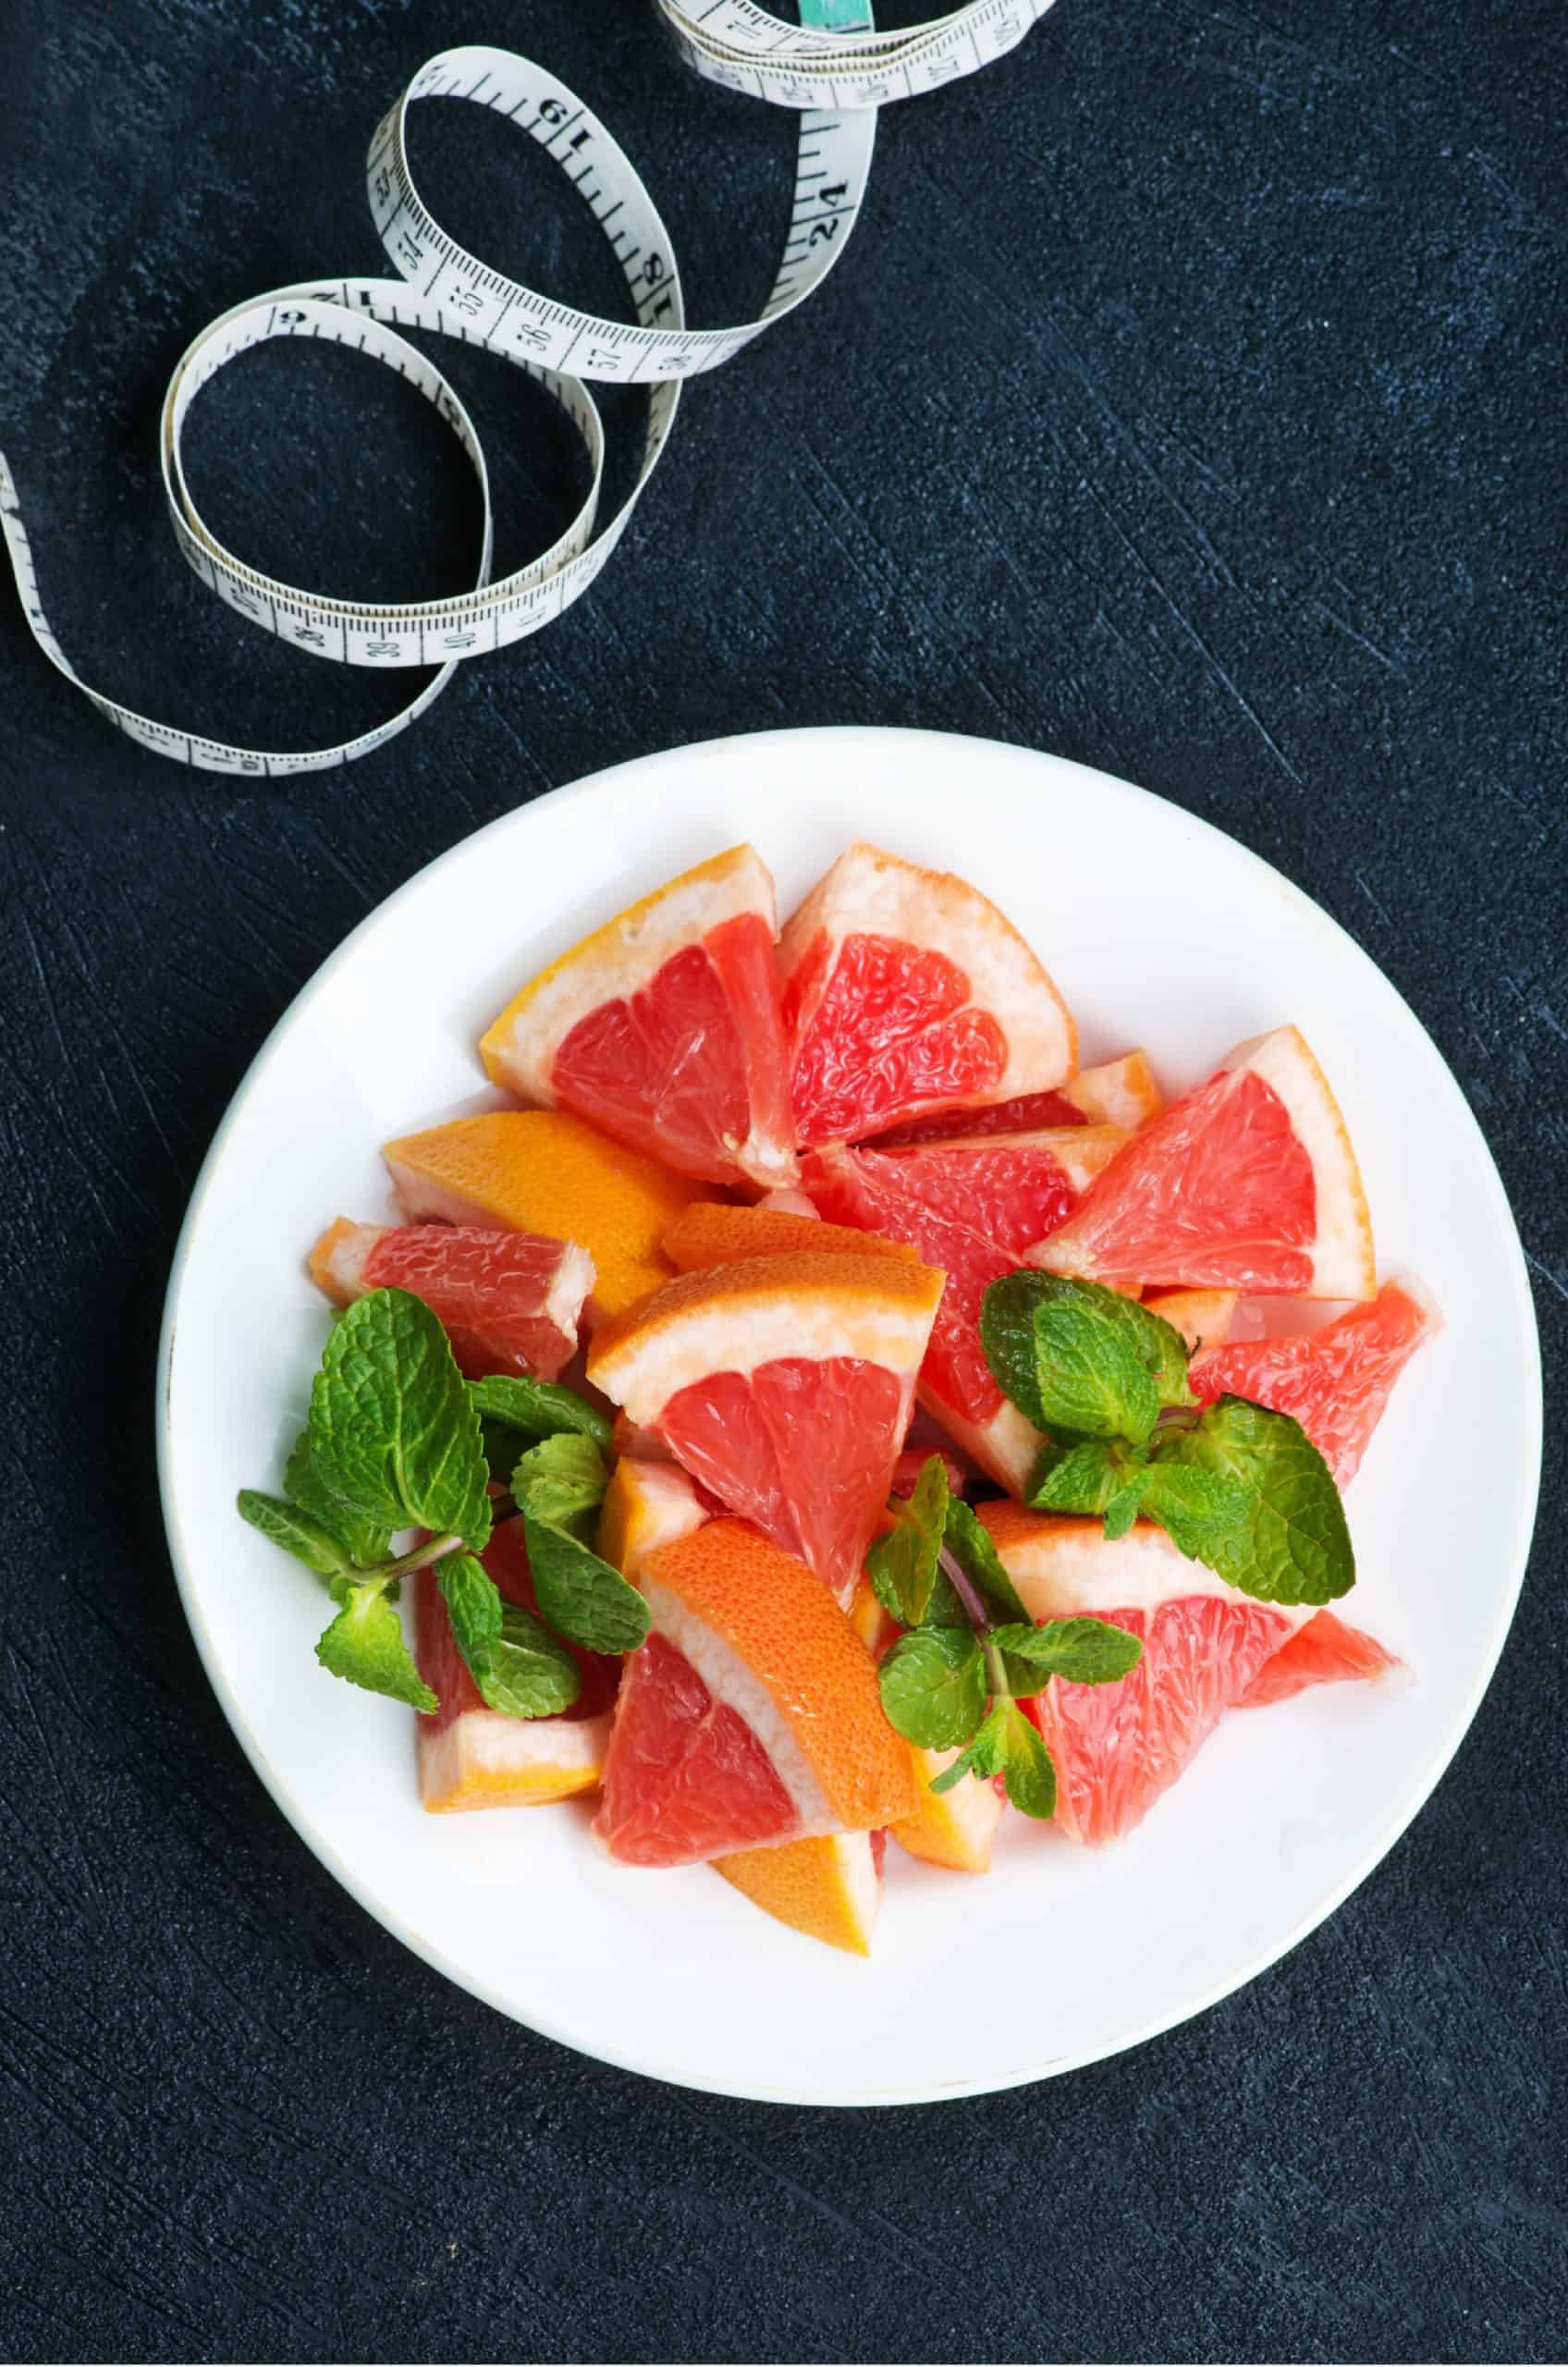 The Grapefruit Diet: A Few Things You Need to Know About It